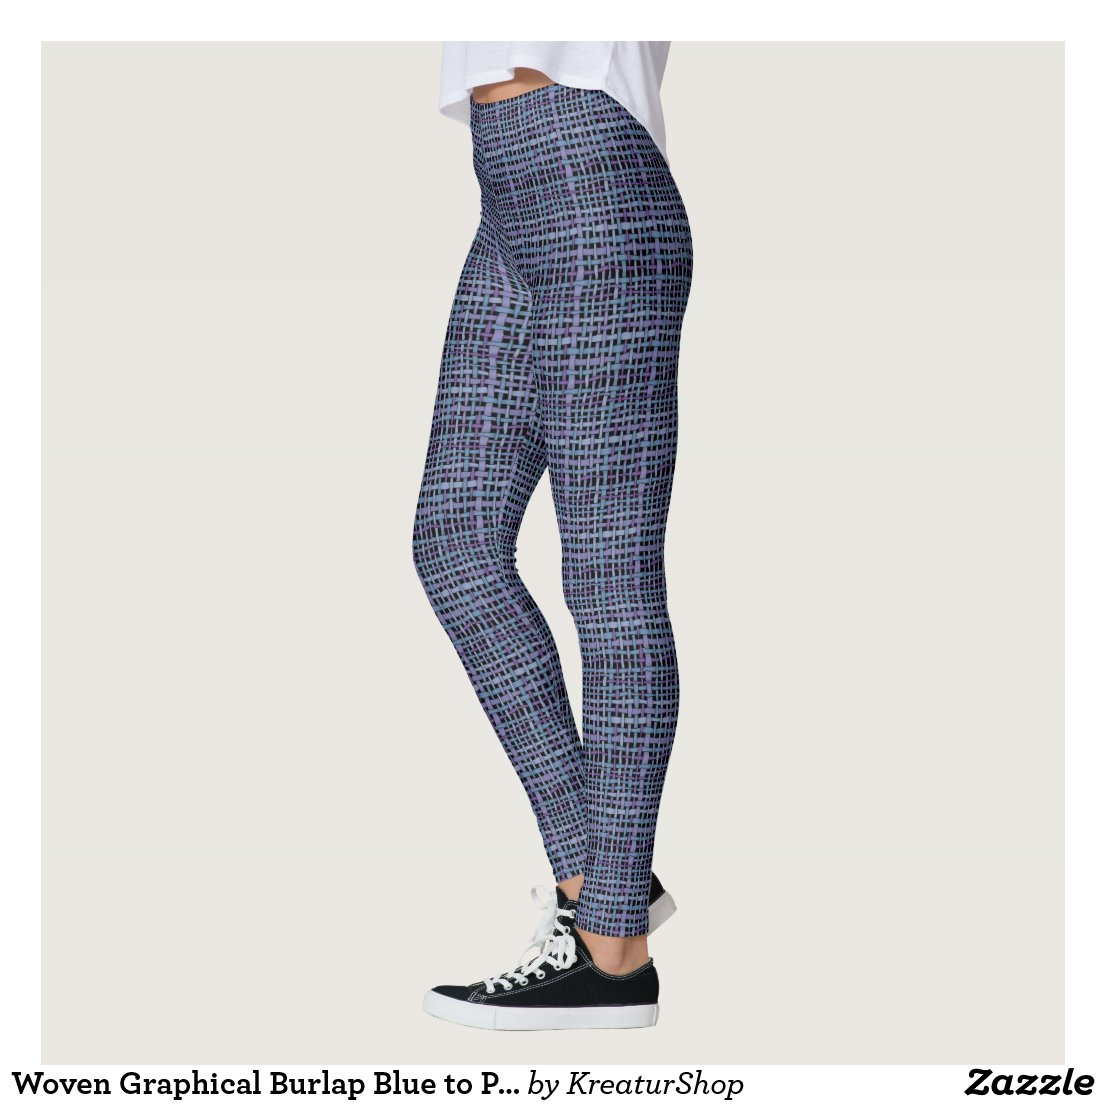 Woven Graphical Burlap Blue to Purple